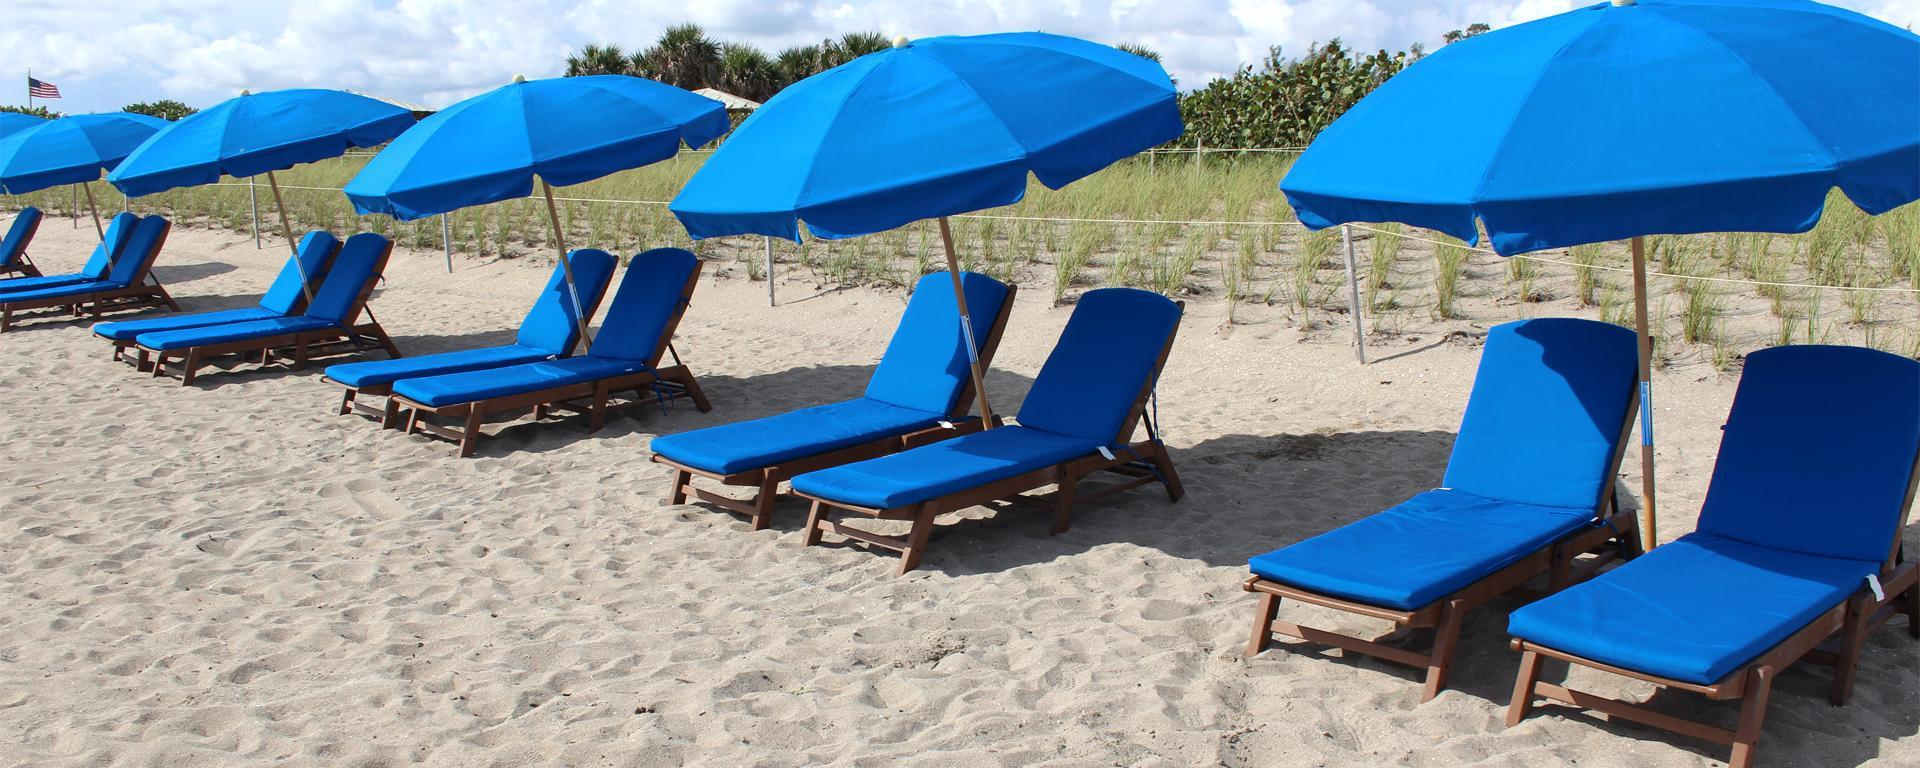 Beach umbrellas and chairs on Jensen Beach that are available for rental.